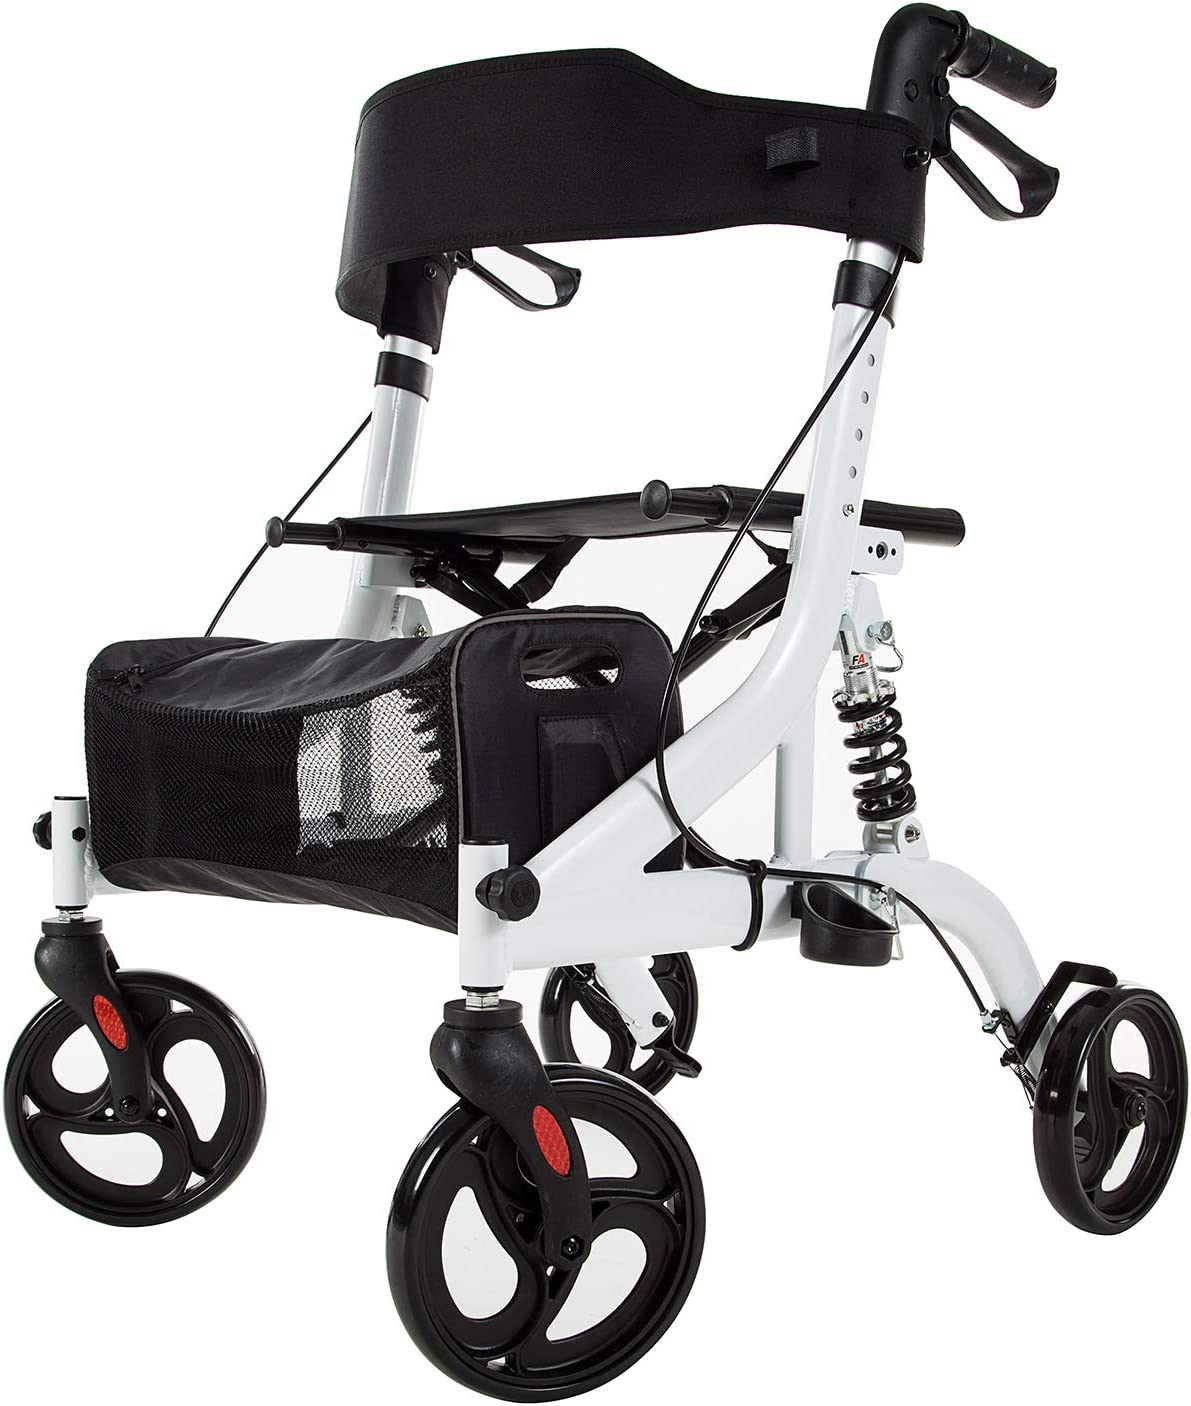 "ELENKER Rollator Walker with Seat, Rolling Mobility Walking Aid, Shock Absorber and Carrying Pouch, Compact Folding Design, Fits for Elderly from 5'2""-6'5"", Supports up to 350 LBS (White)"